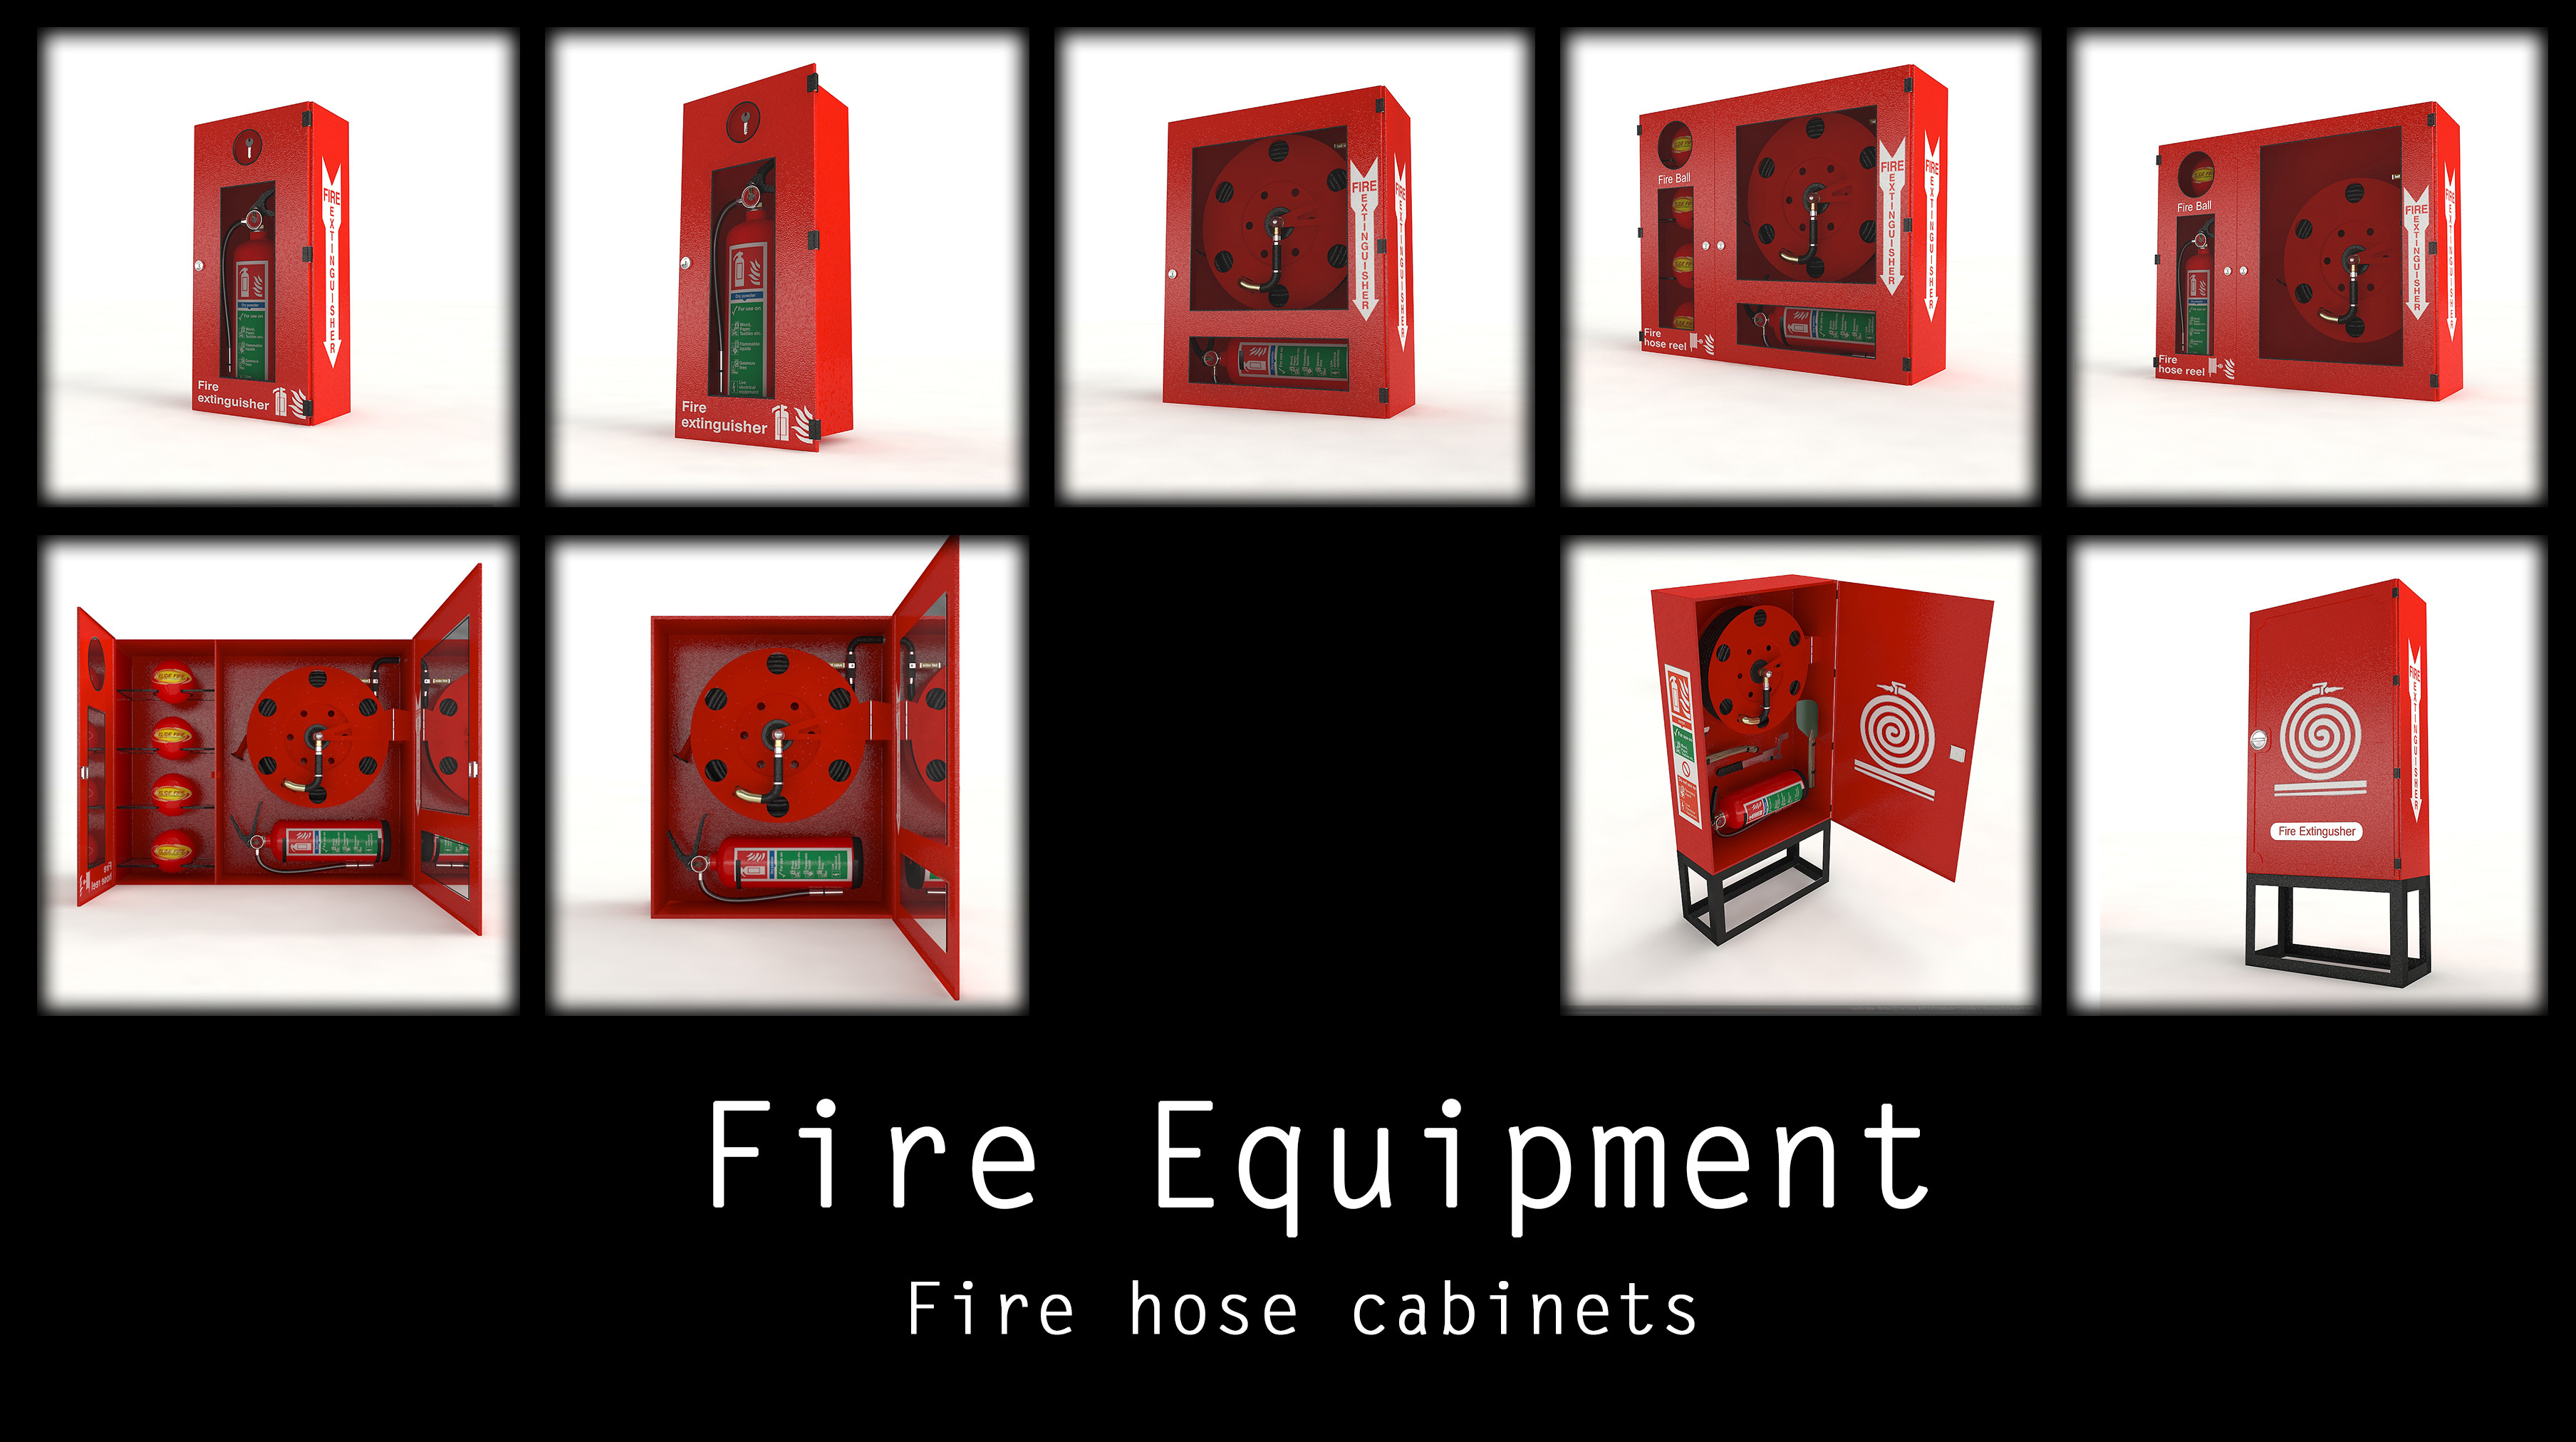 fire hose cabinets.jpg